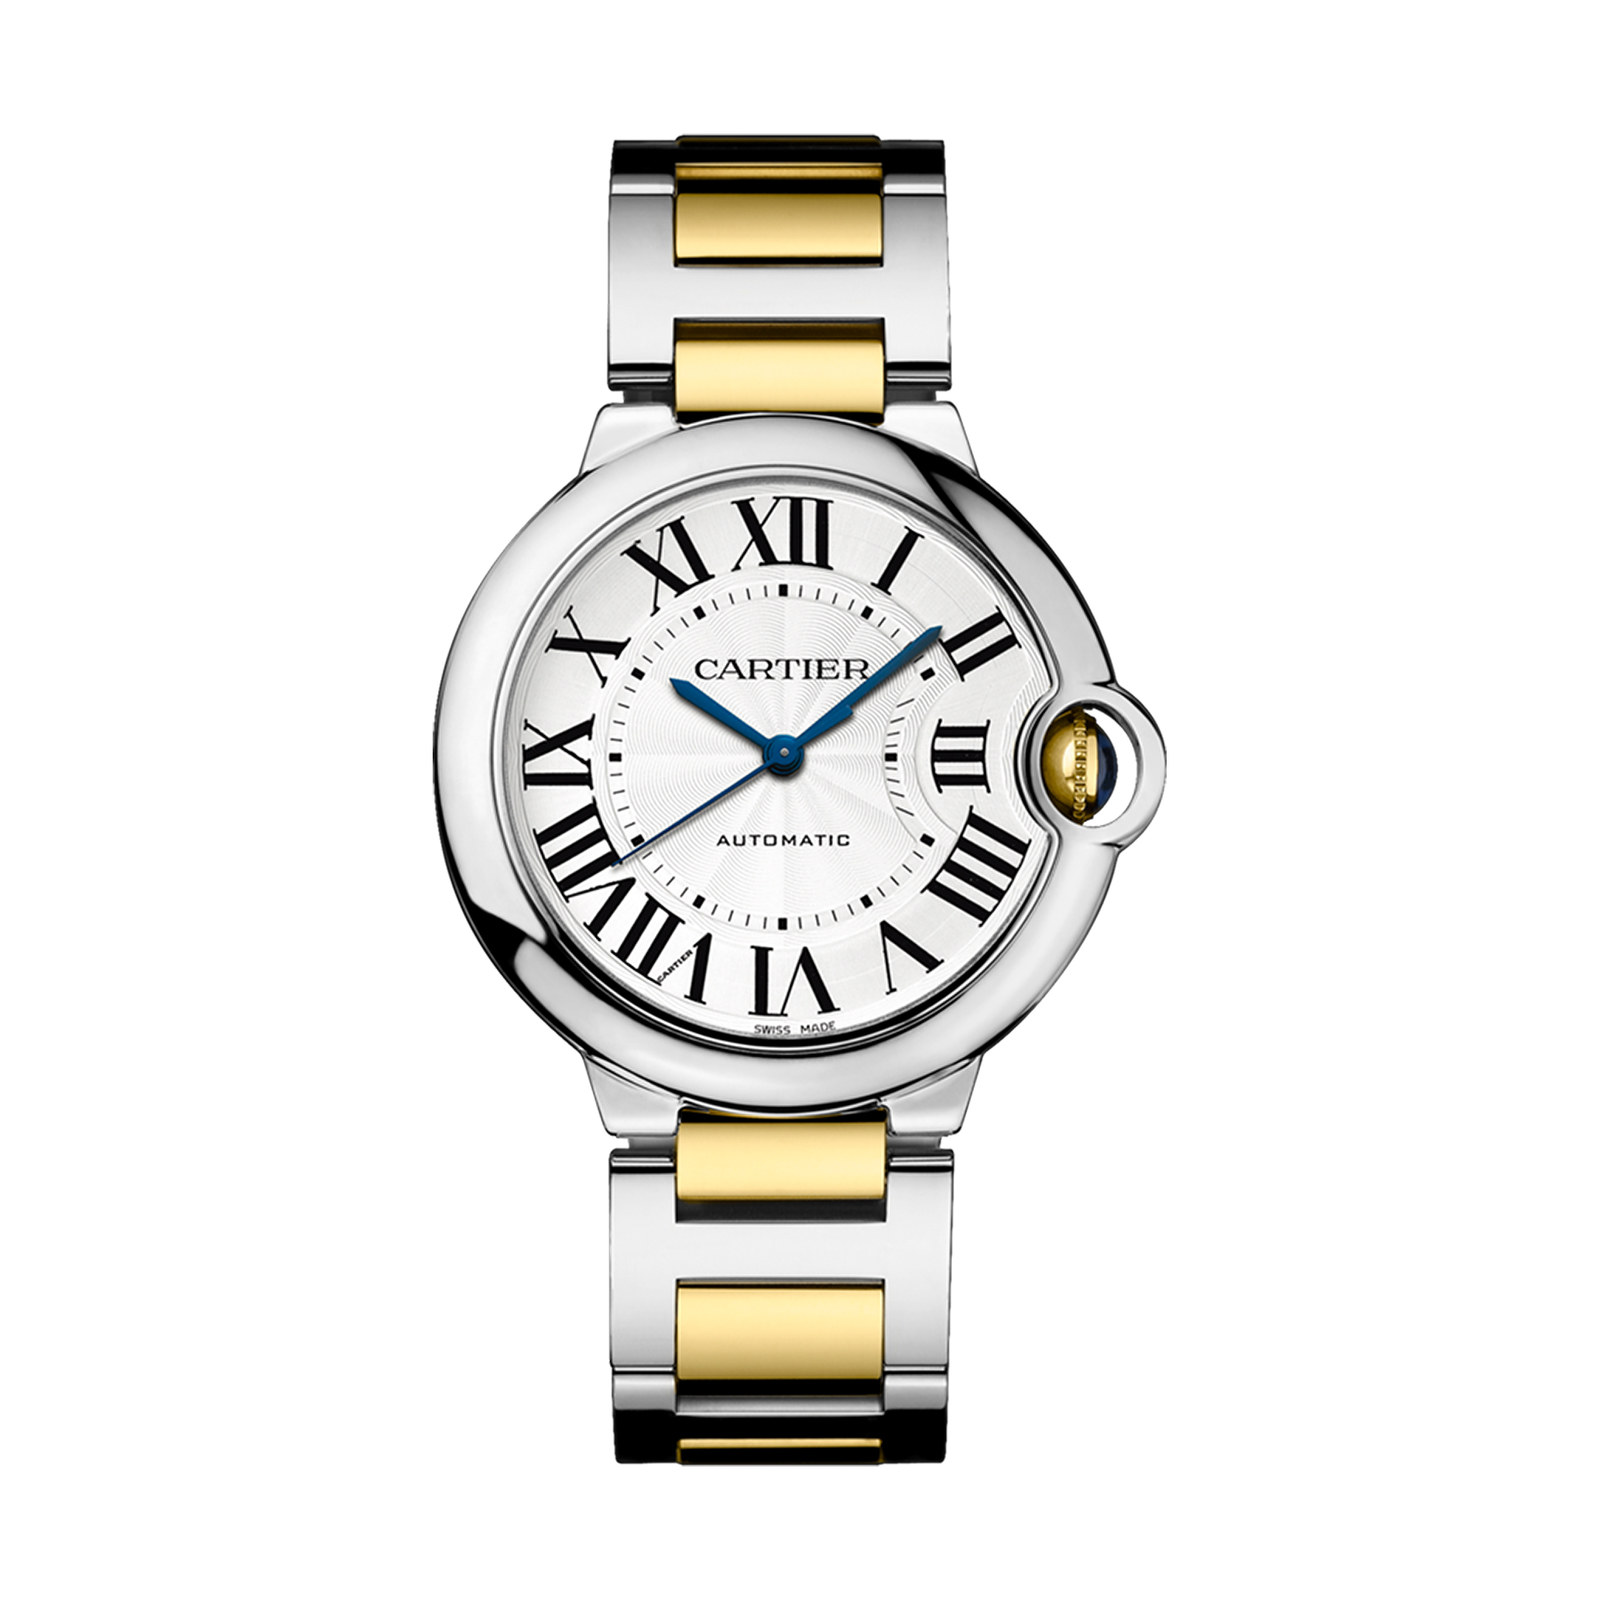 Ballon Bleu de Cartier watch 2022f760c164